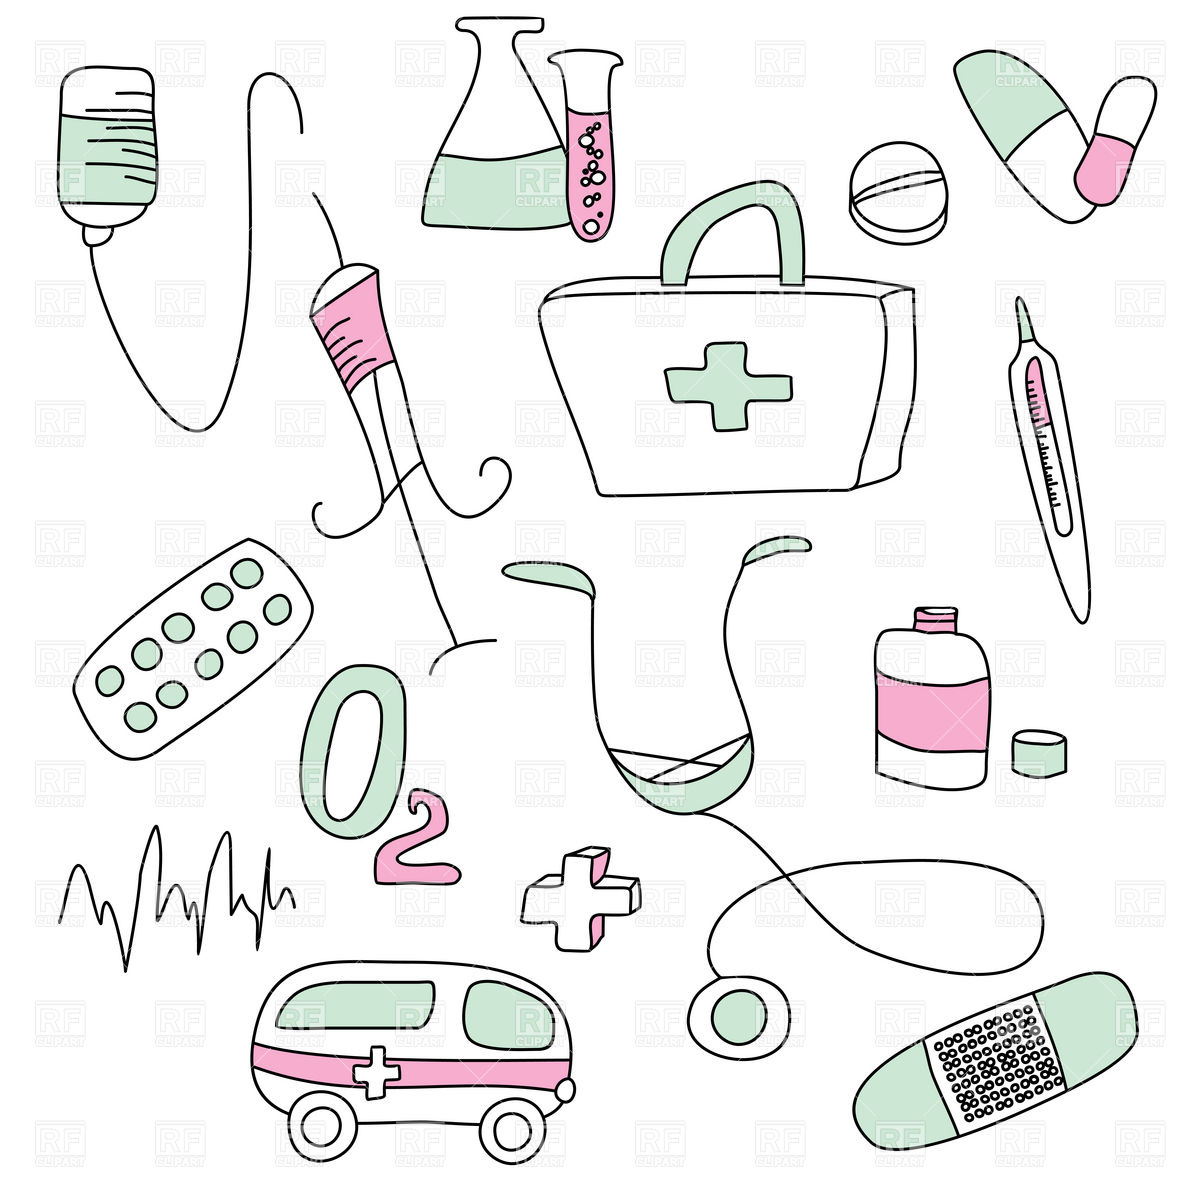 Clip Art Medical Chest Clipart - Clipart Kid